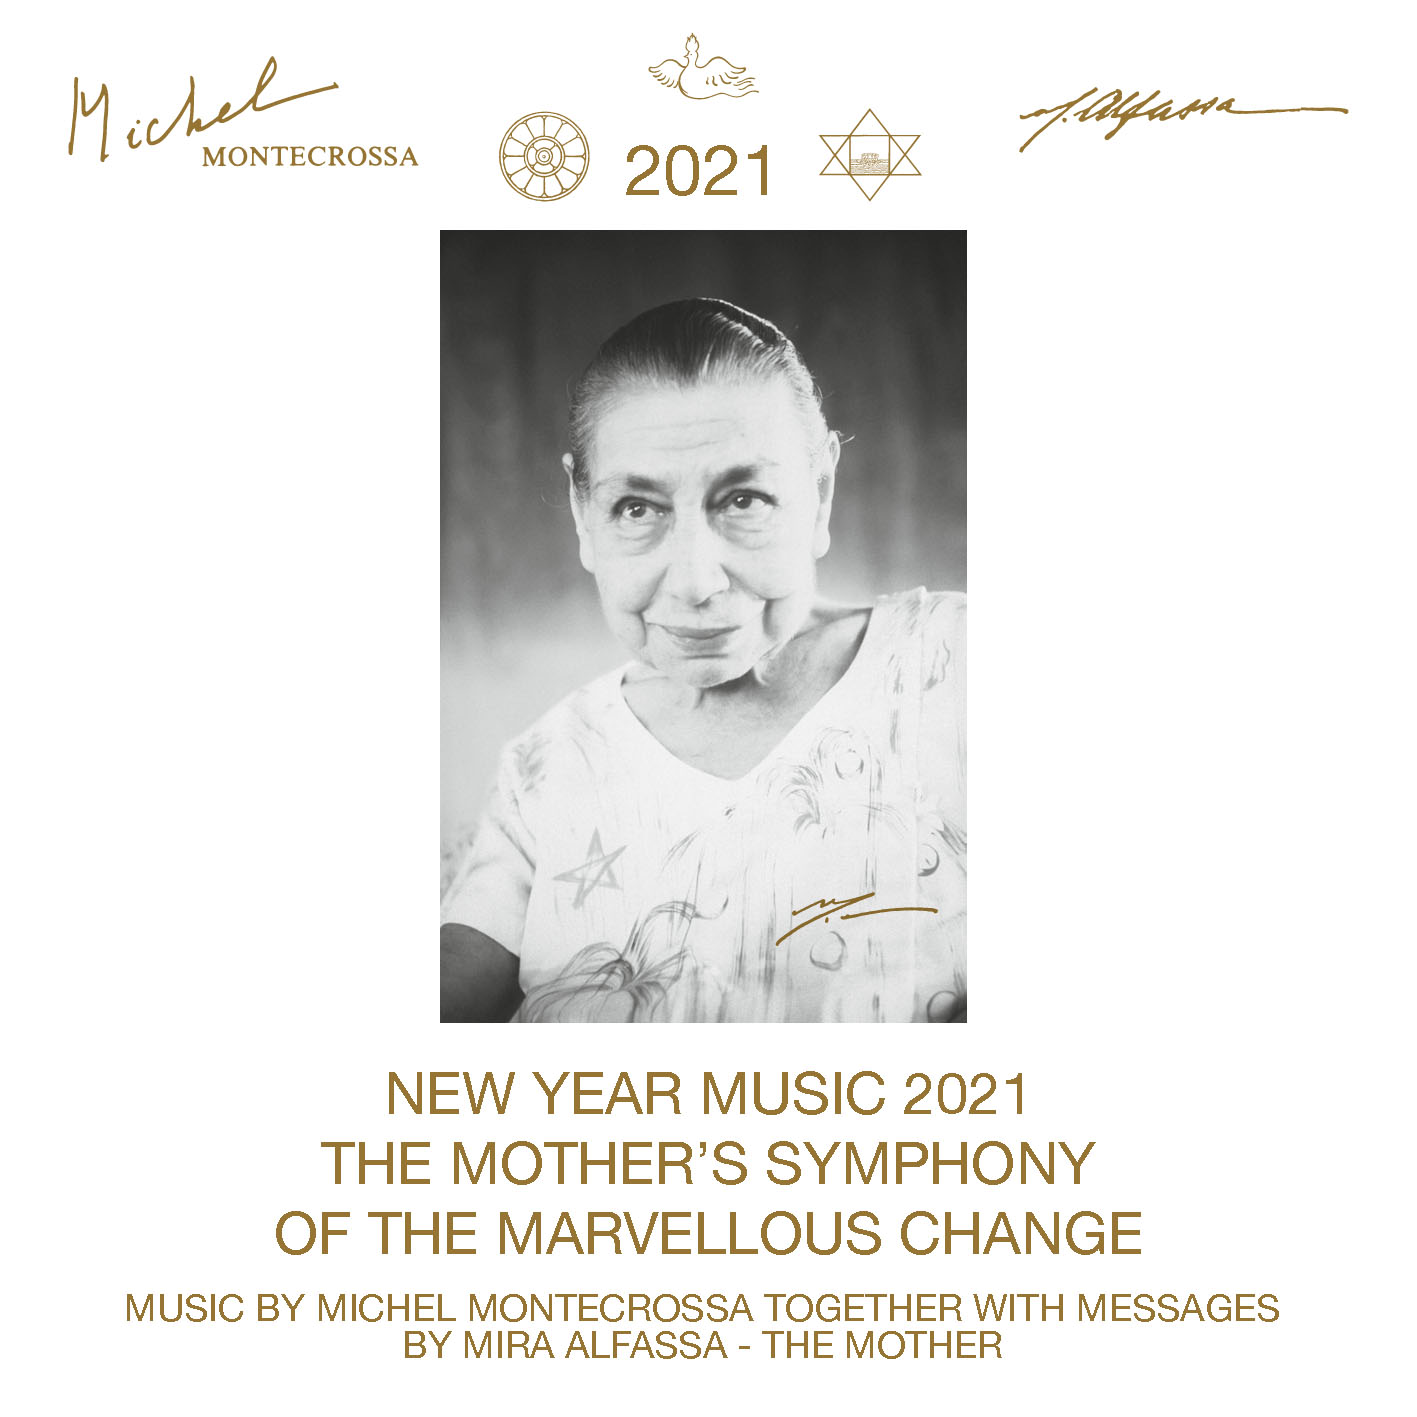 New Year Music 2021